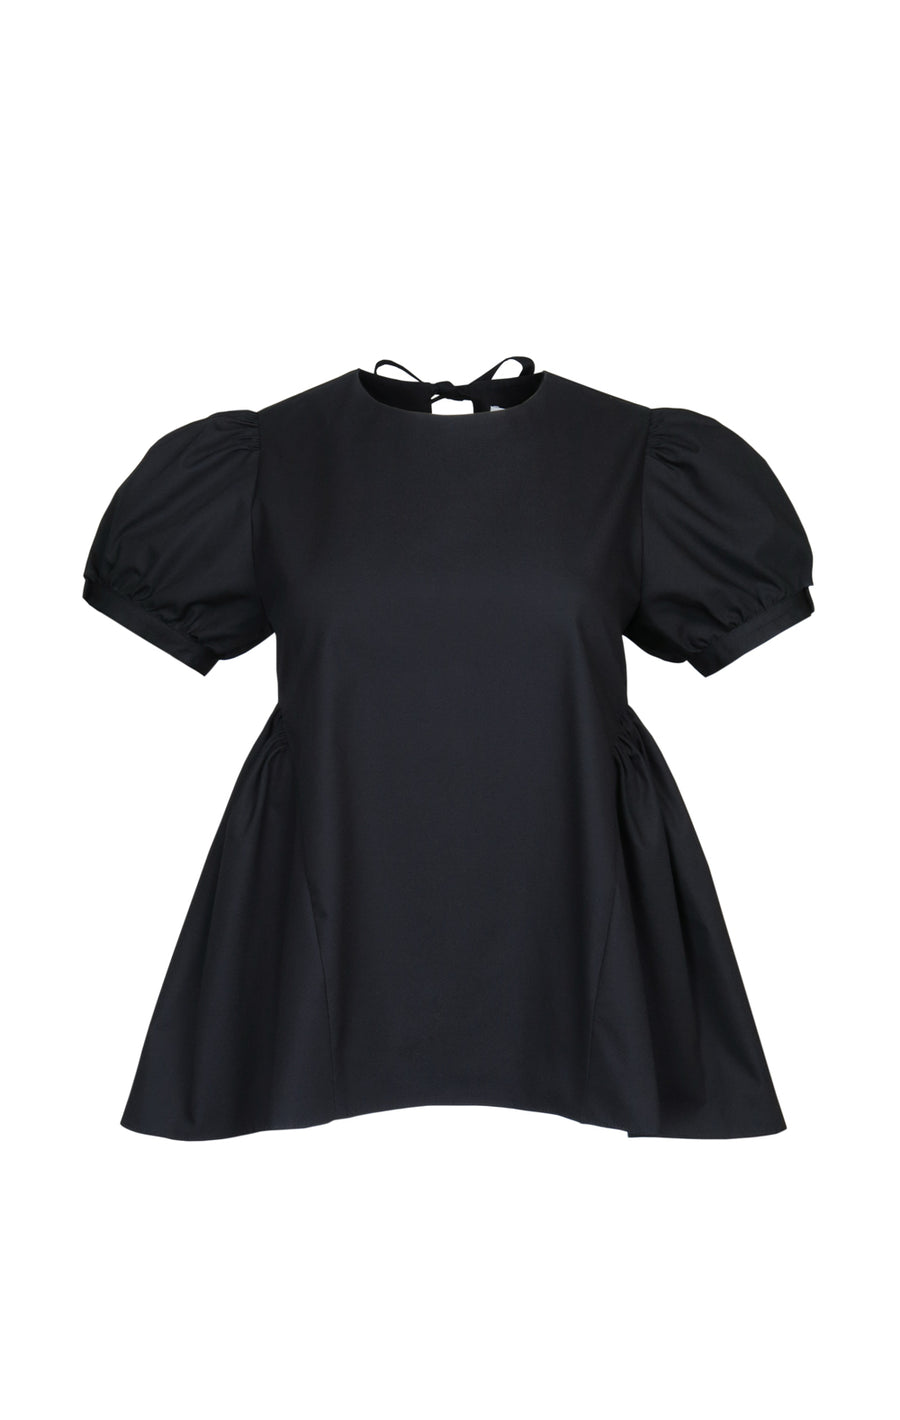 Comfbo Top in Black